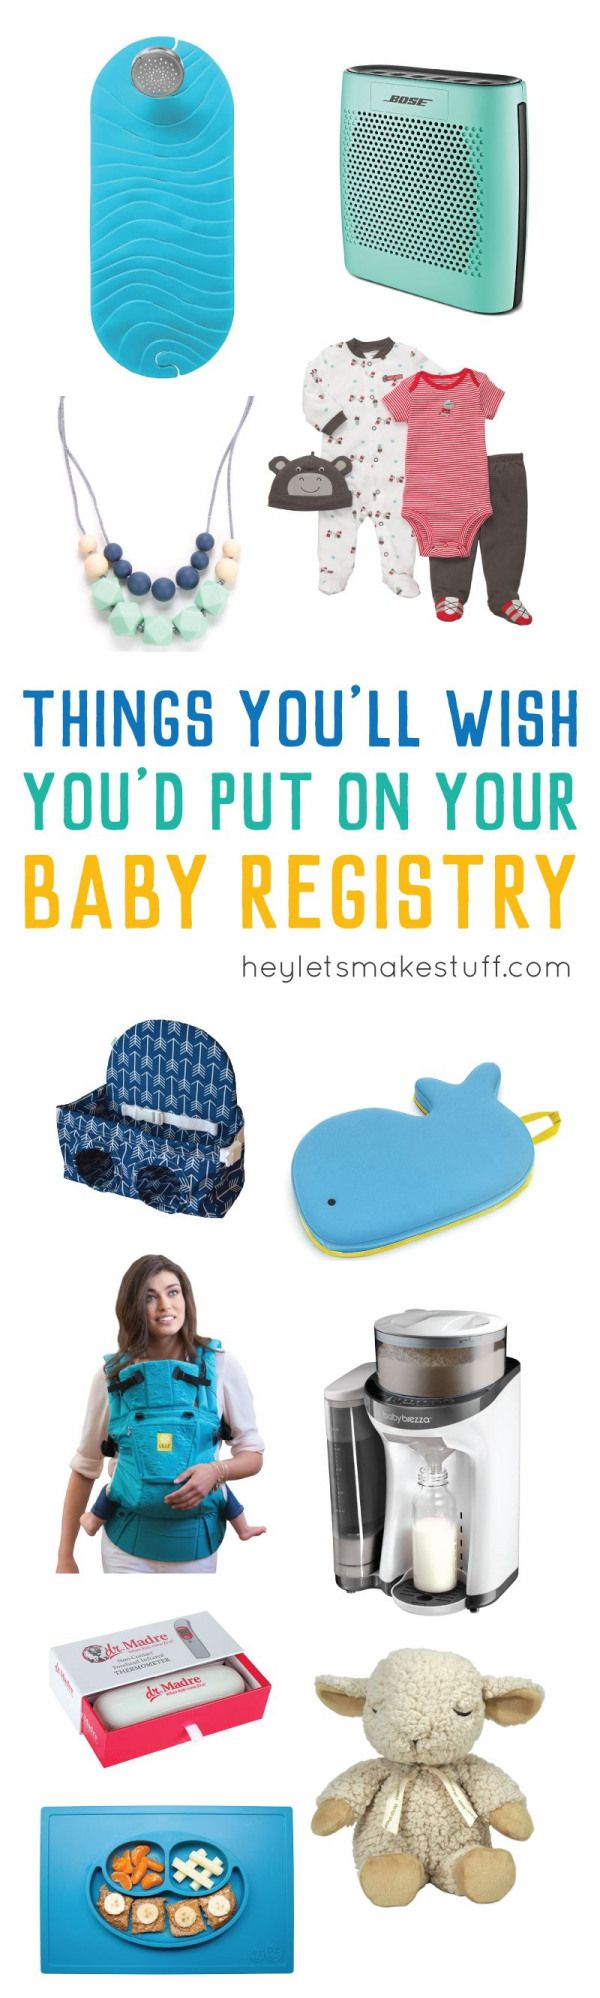 Don't miss putting these baby registry items on your list! These are often misse…